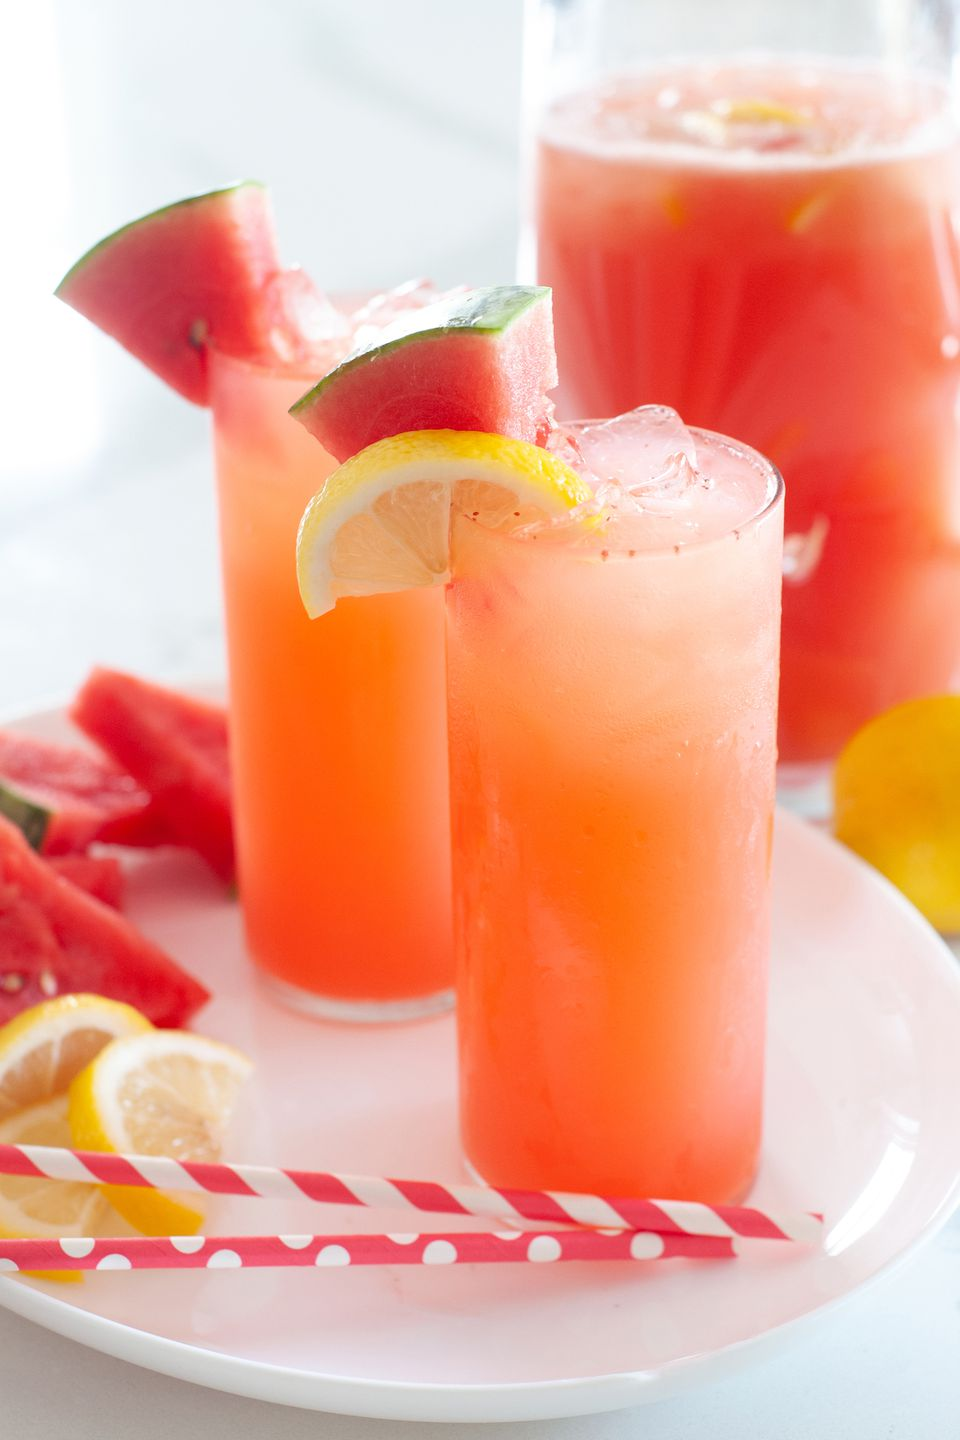 100% whole lemon lemonade with watermelon served in tall glasses and garnished with lemon slices.